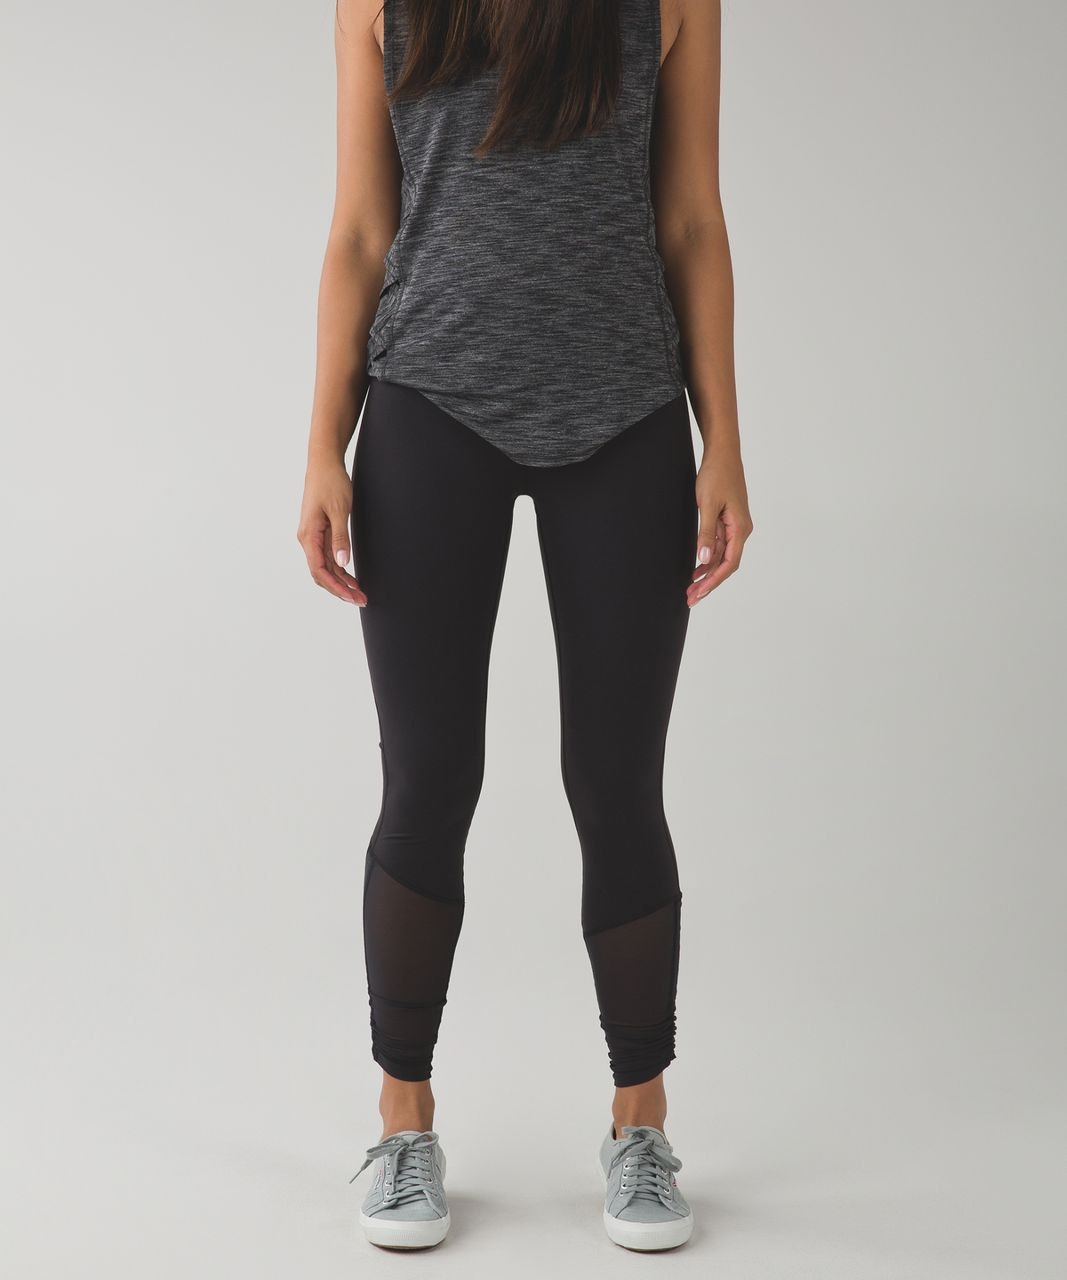 Lululemon Sweaty Endeavor Tight *Full-On Luon - Black